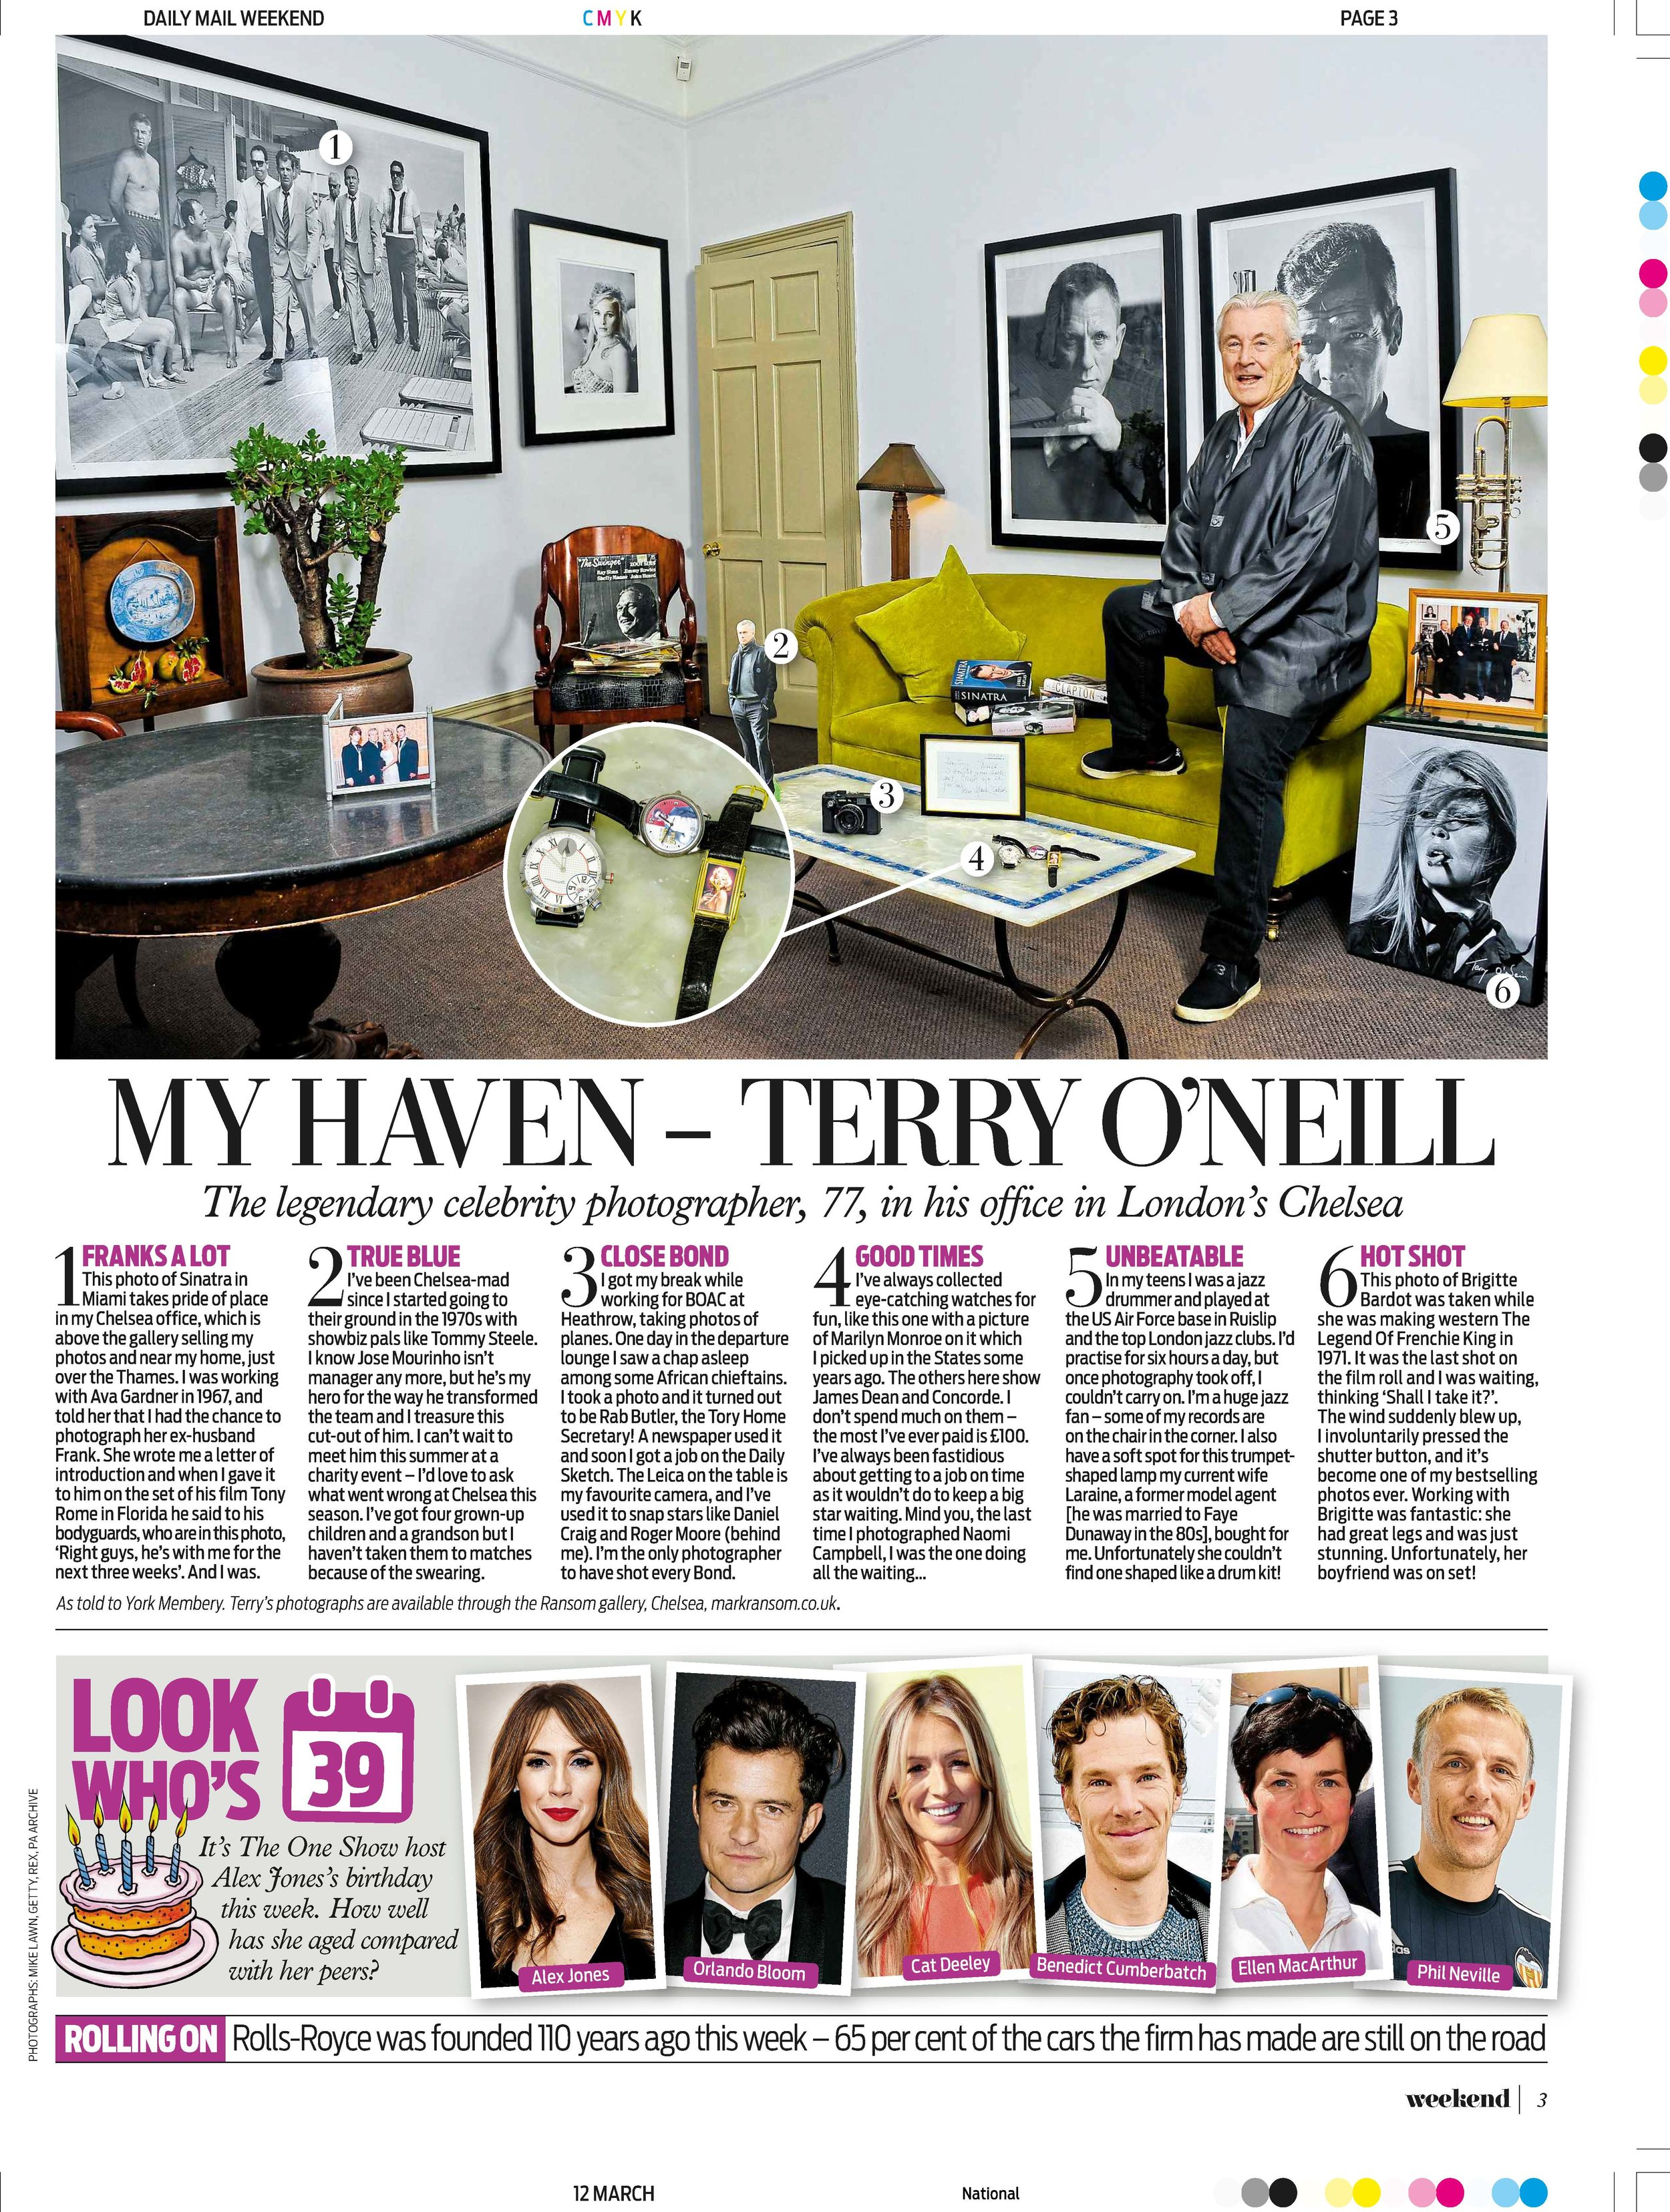 DAILY MAIL - Terry O'Neill at Ransom Art